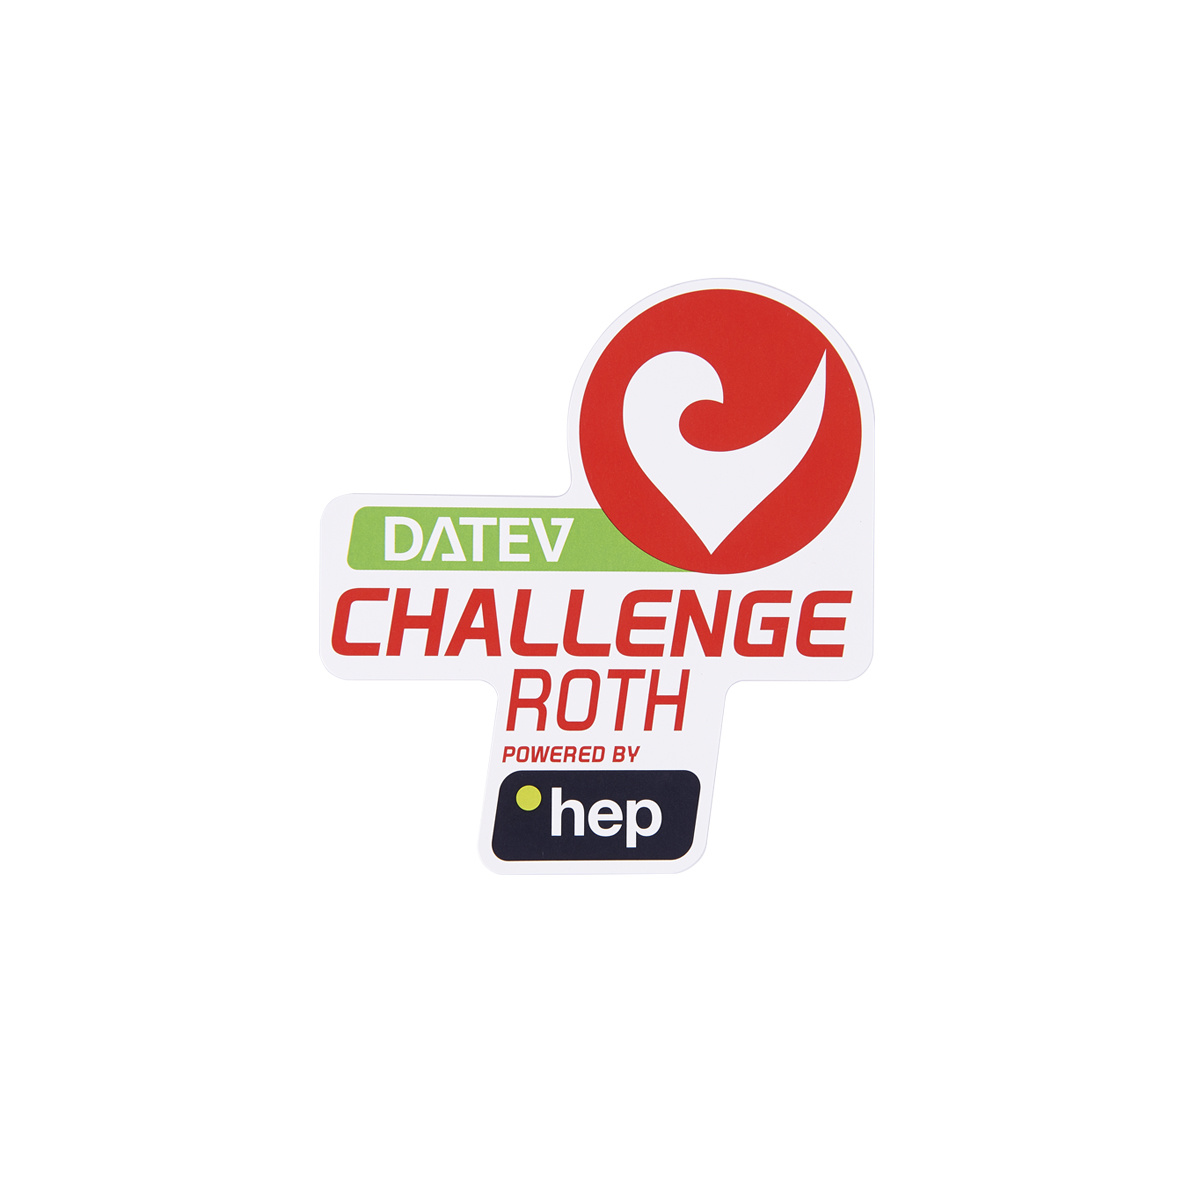 Sticker DATEV Challenge Roth powered by hep small-1